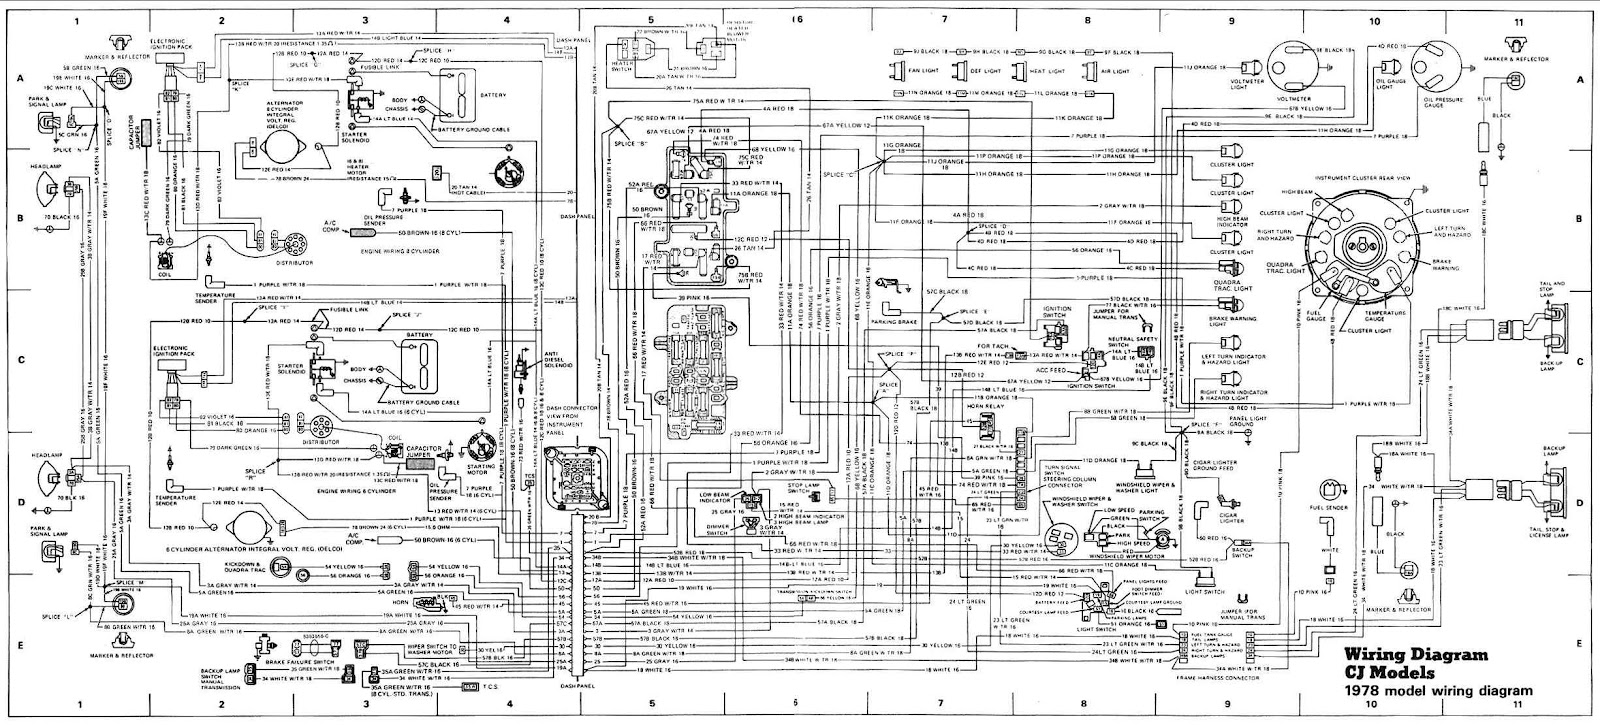 Jeep CJ Models 1978 Complete Electrical Wiring Diagram jeep stereo wiring diagram jeep free wiring diagrams 2003 jeep liberty radio wiring diagram at bakdesigns.co